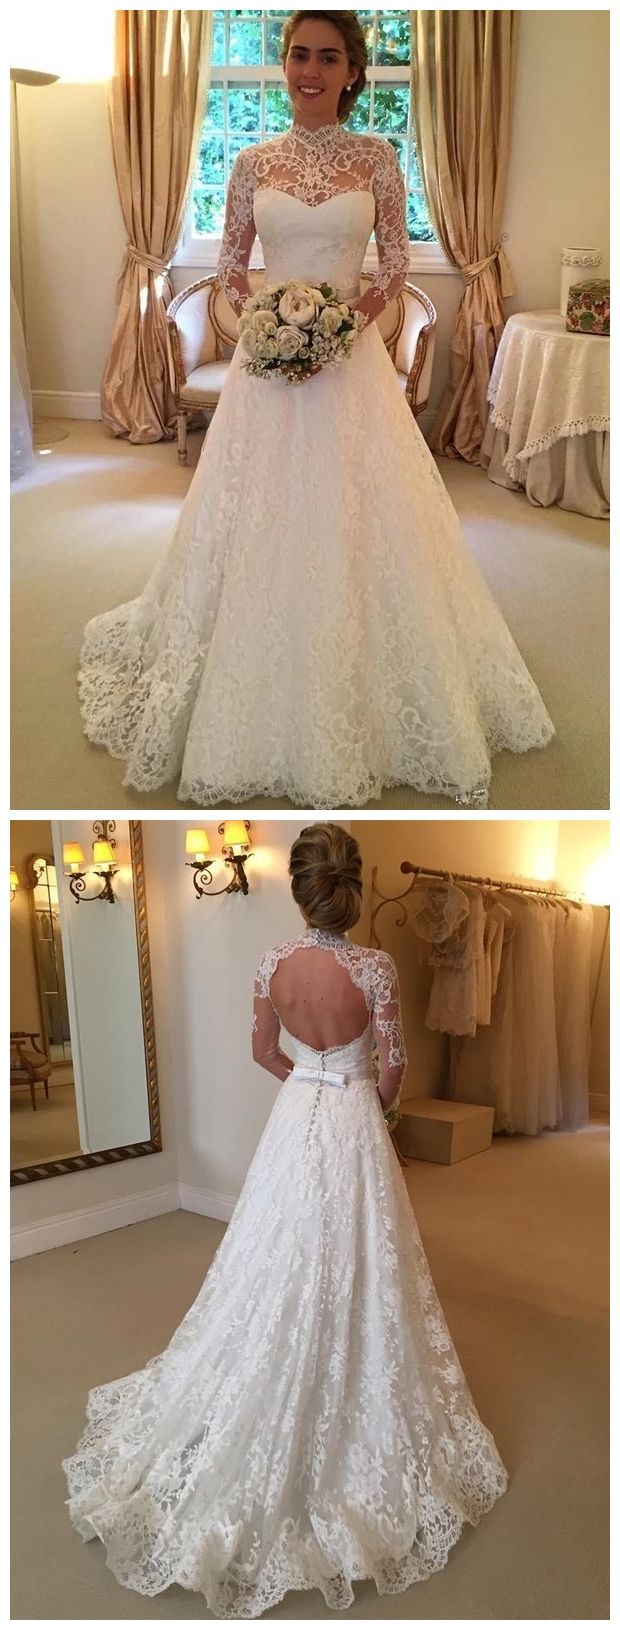 Modest long sleeve wedding gown  Long Sleeve Modest Lace Wedding Dresses High Neck Backless Ivory